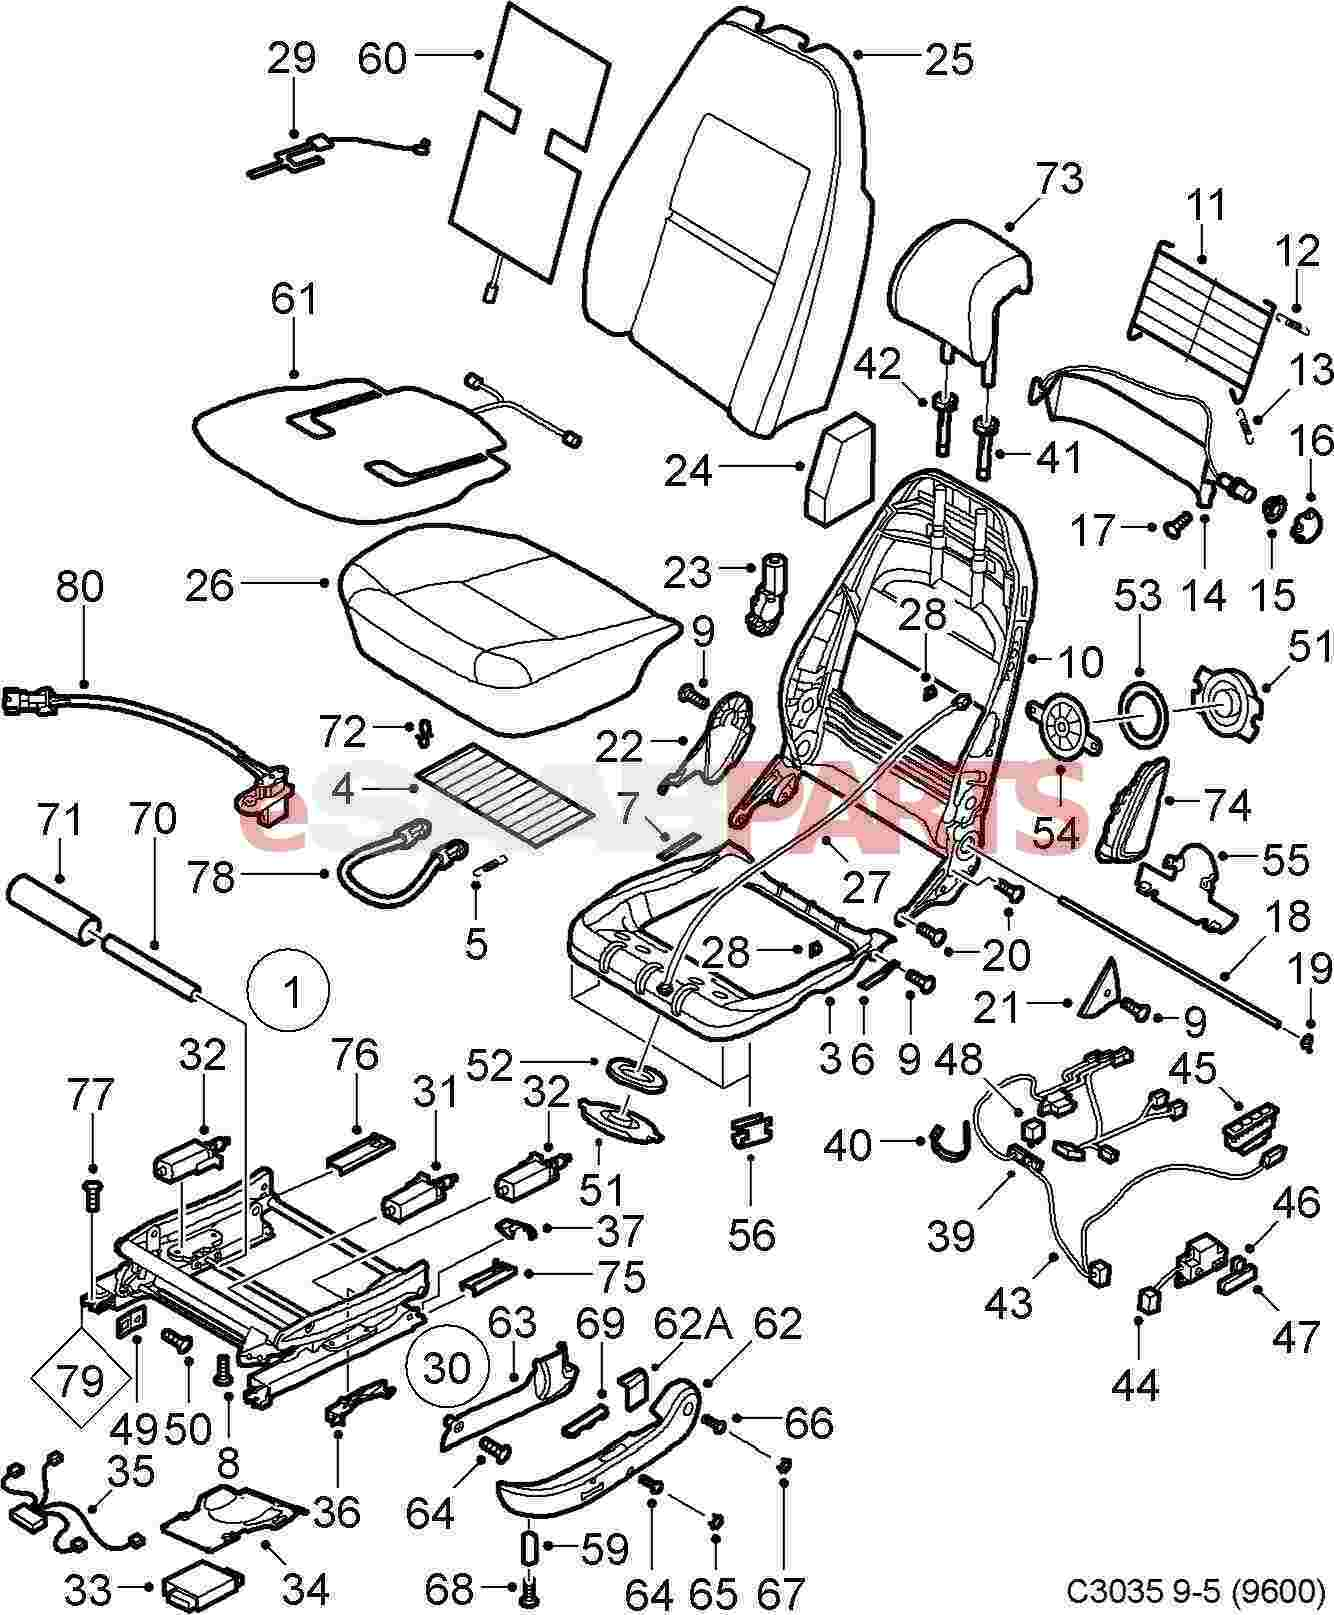 Esaabparts saab 9 5 9600 > car body internal parts > seat assembly front > electric front seats